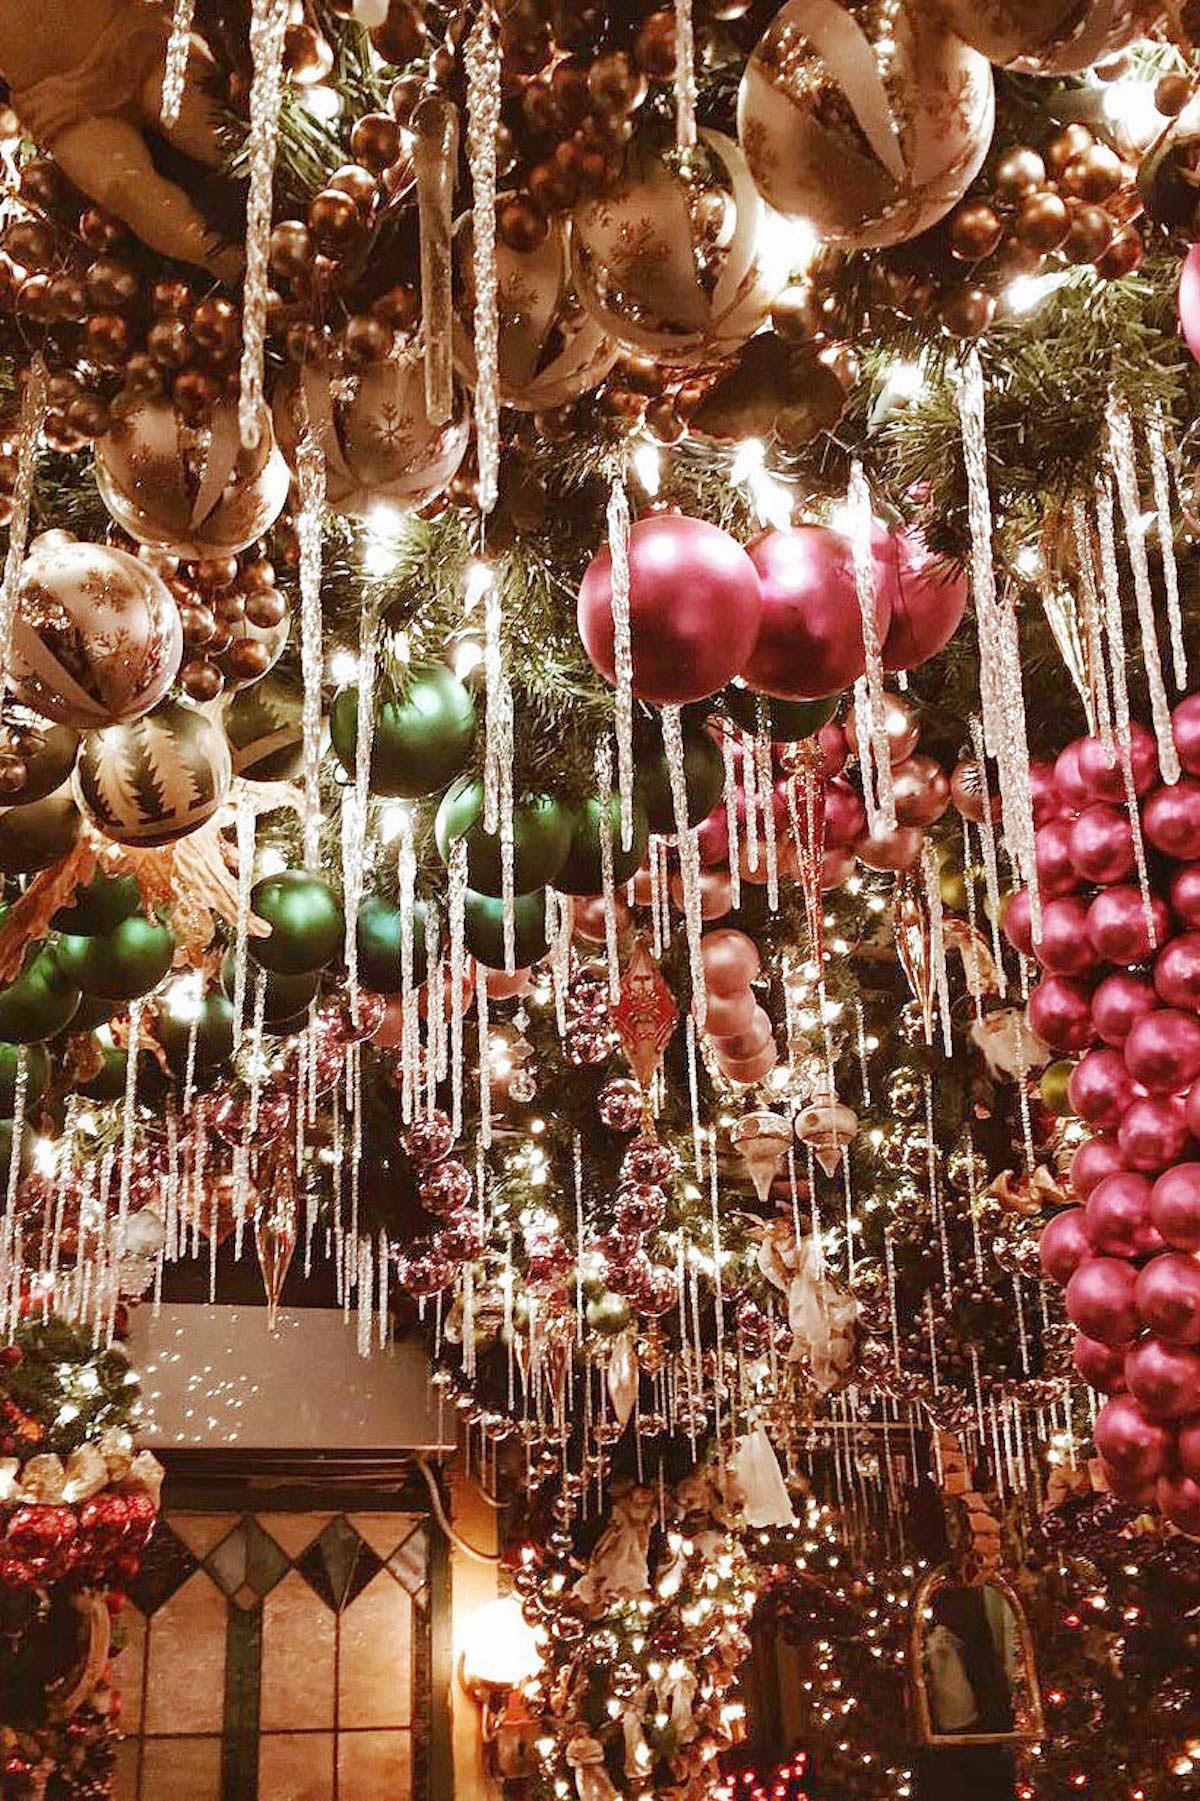 Rolfs New York Restaurant Christmas Decorations | New York City Holiday Guide